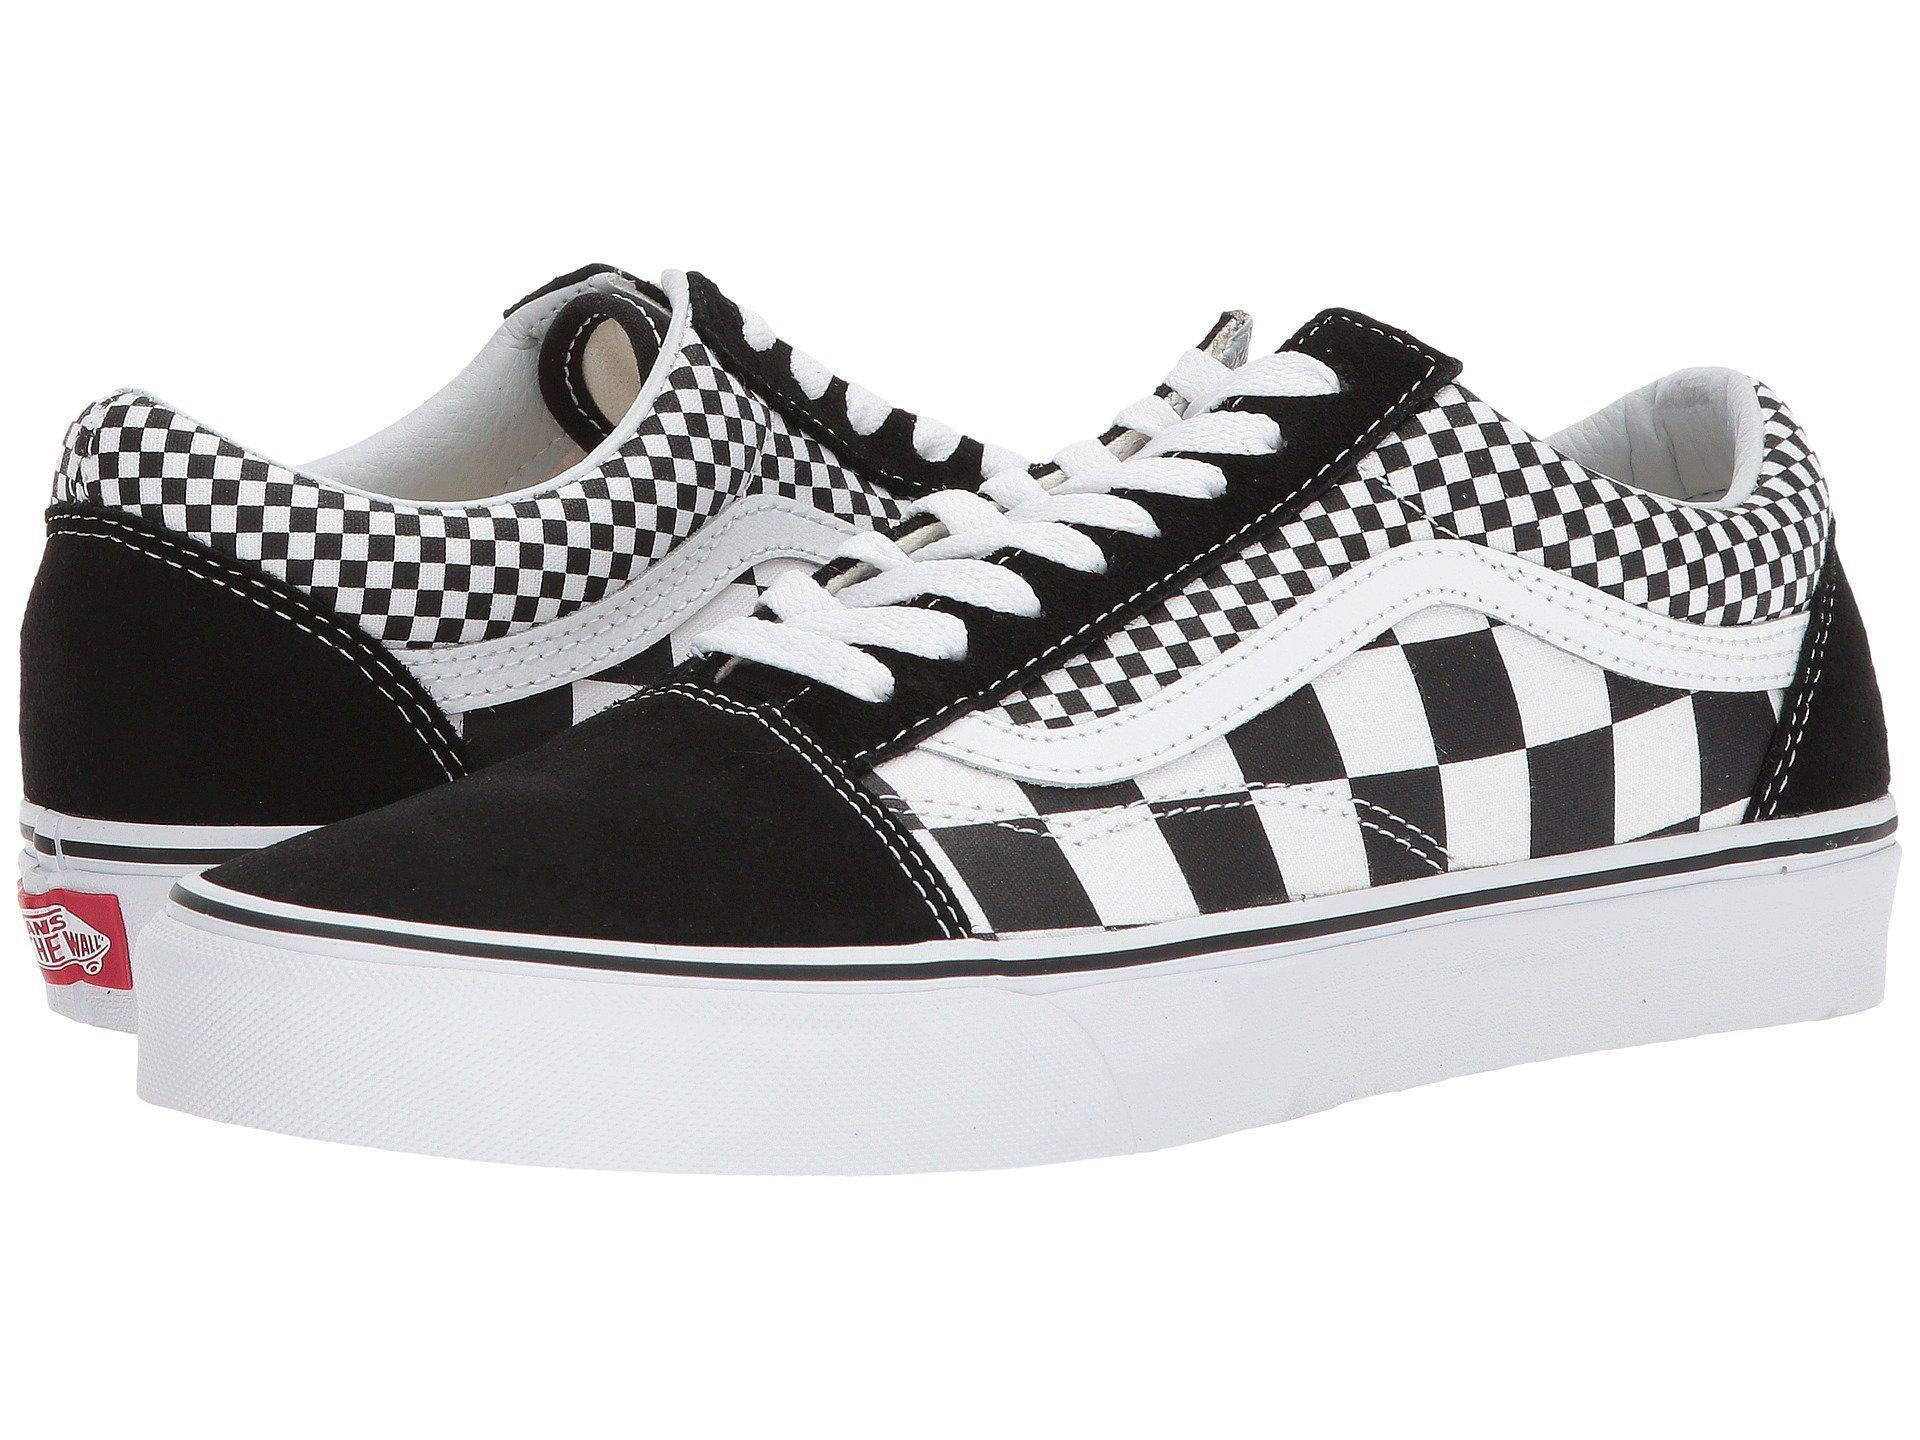 8959f1cab5 Lyst - Vans Mix Checker Old Skool in Black for Men